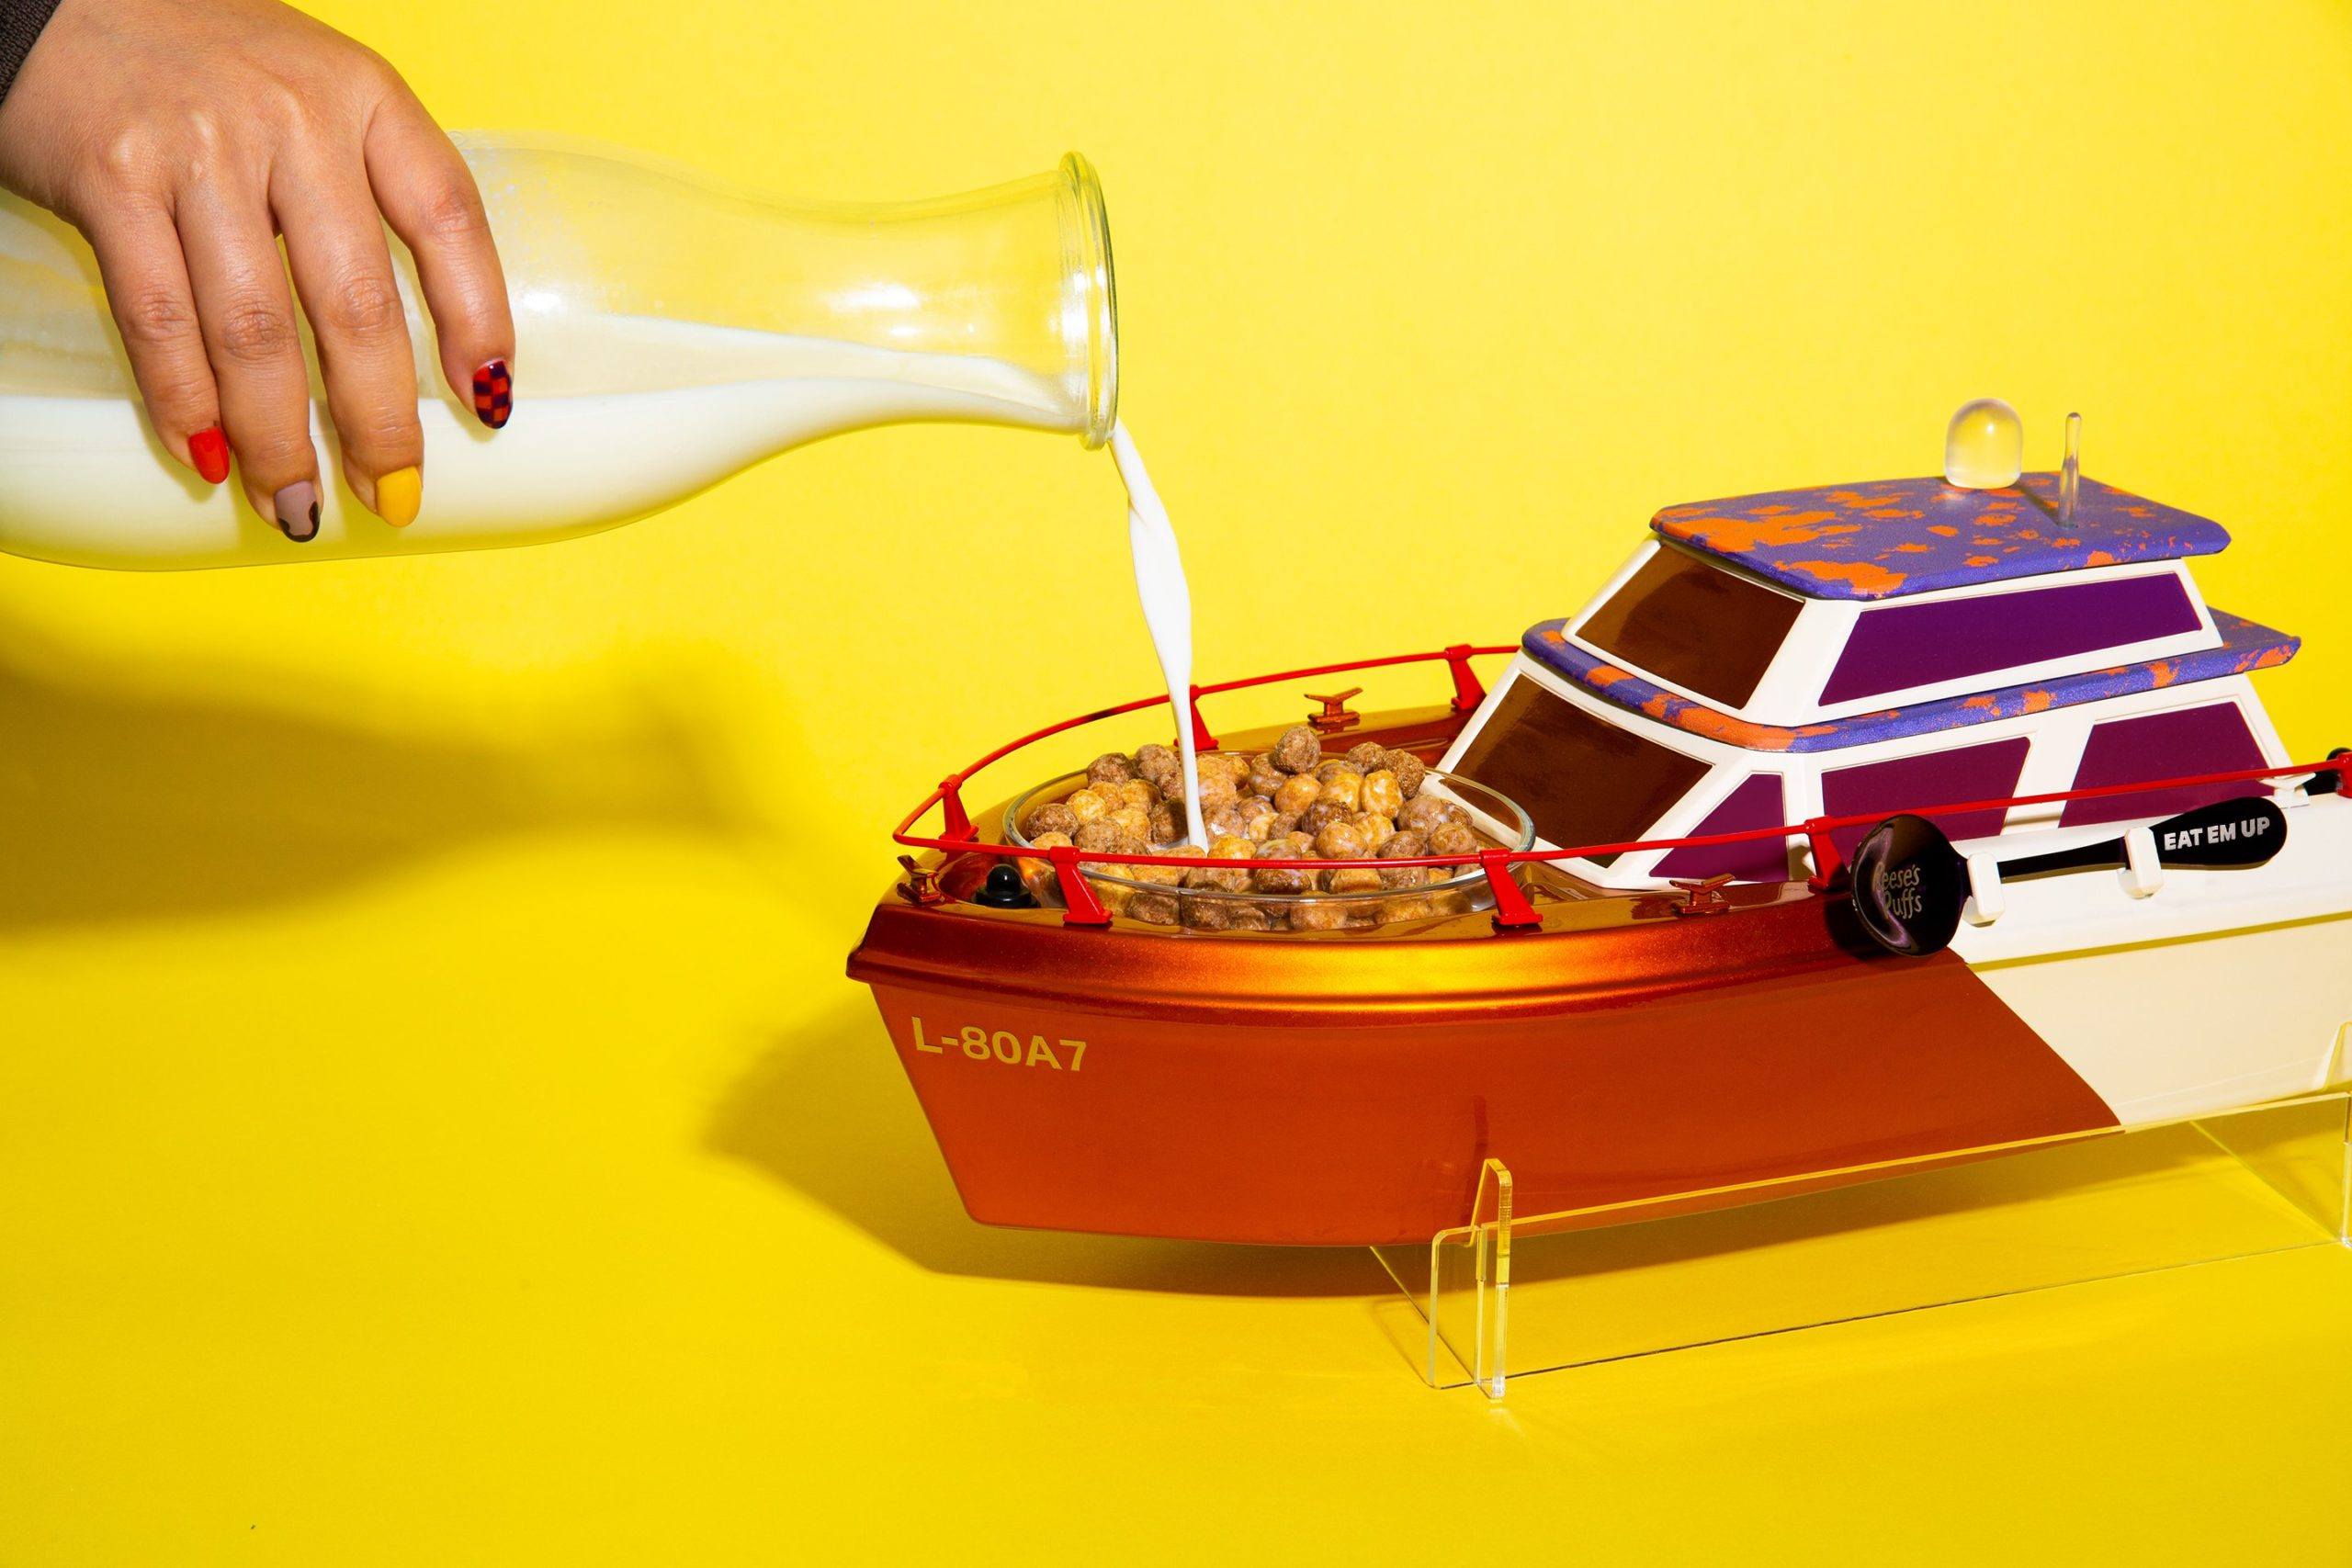 Lil Yachty x Reese's Puffs Lil Yacht takes cereal-eating experience to a new level 15